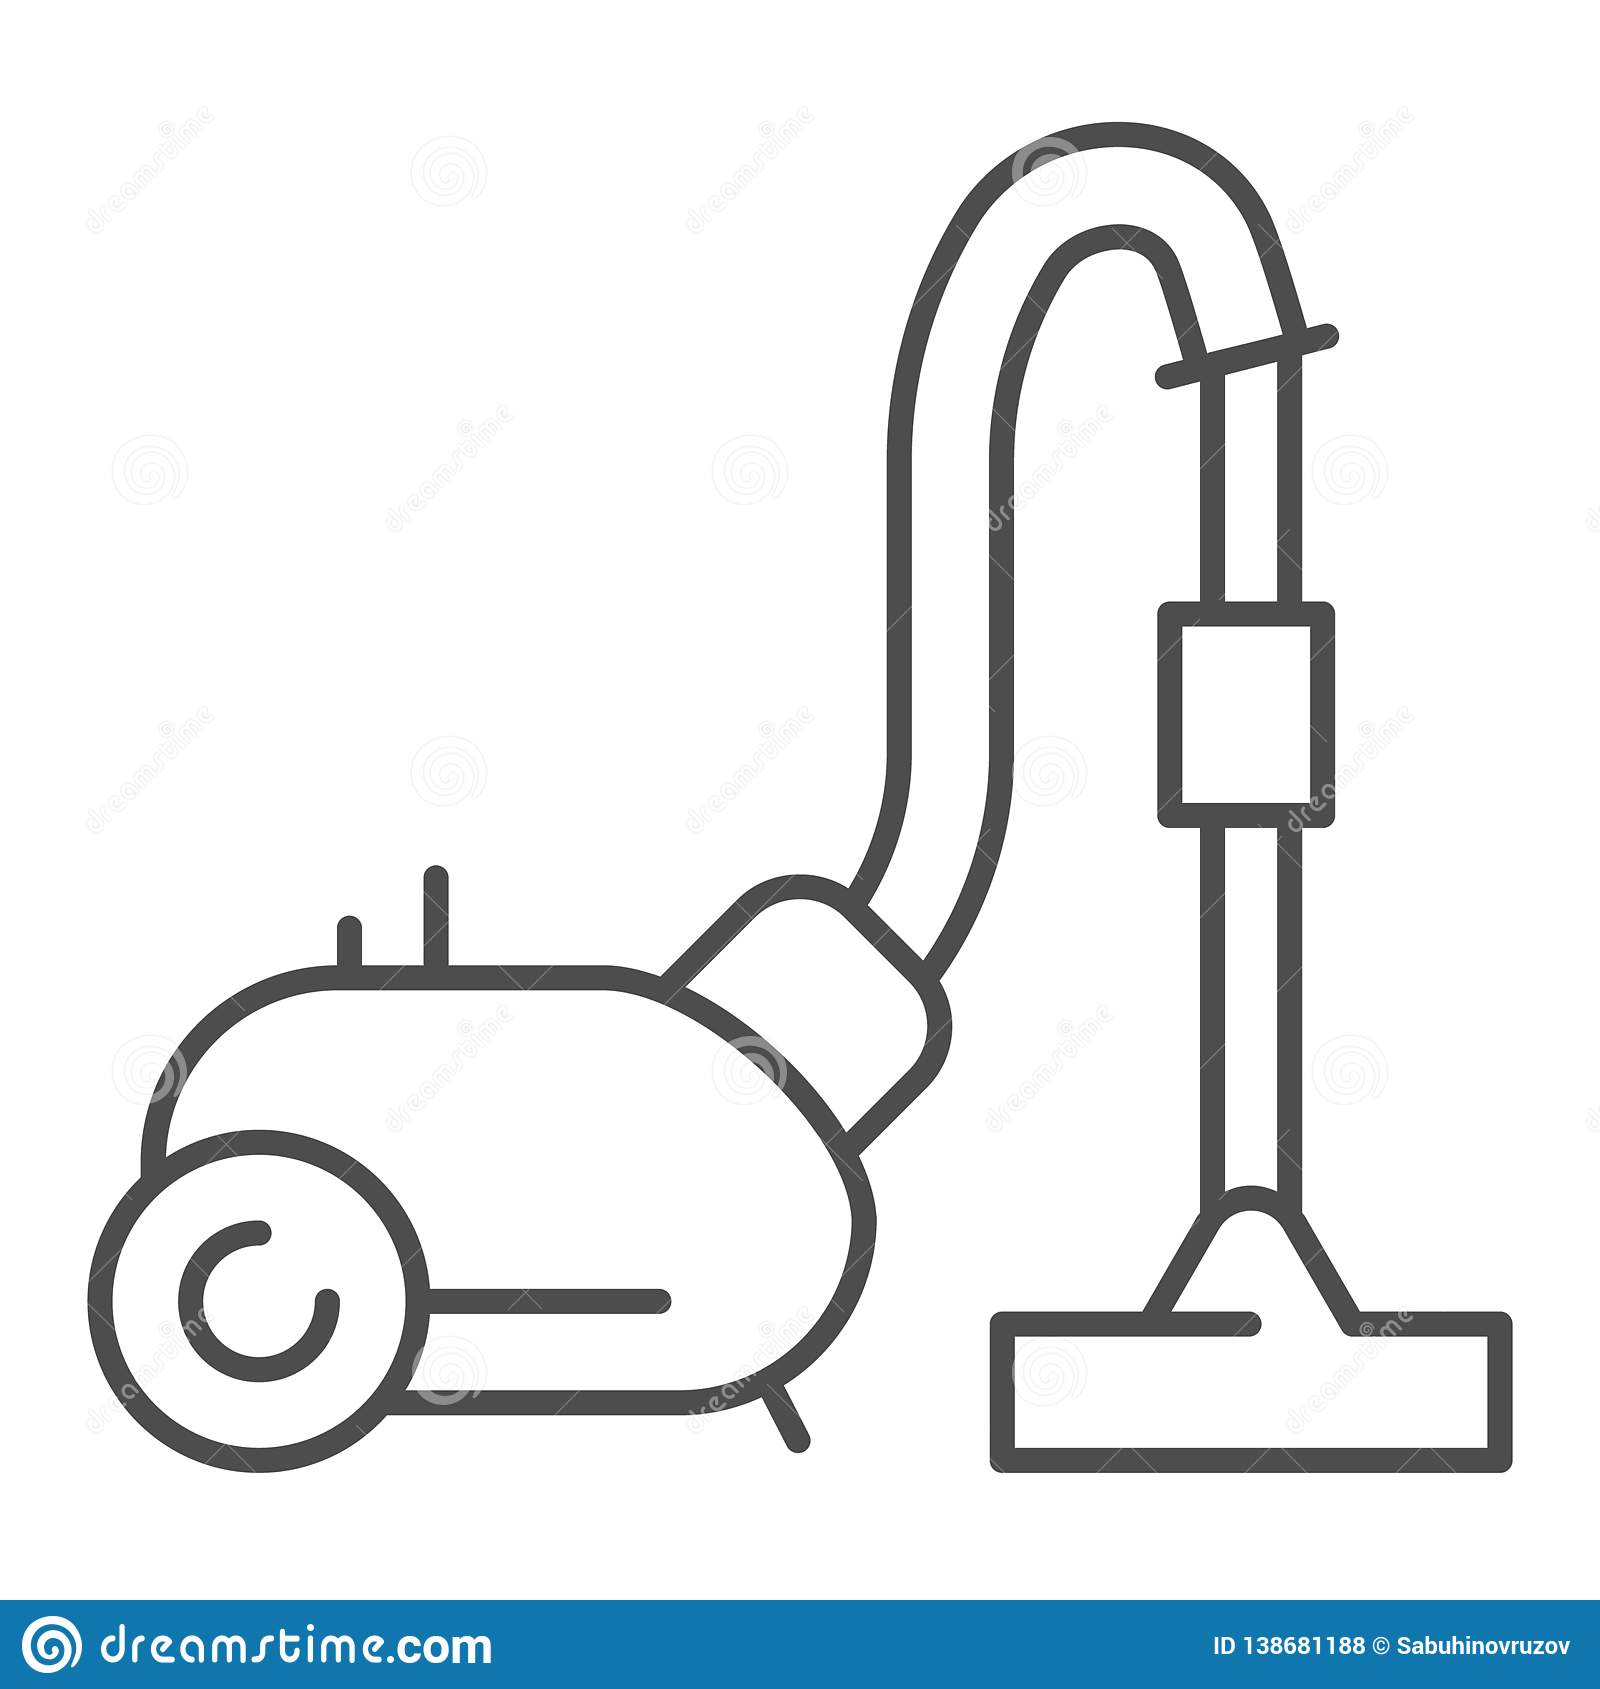 Vacuum cleaner thin line icon. Home appliance vector illustration isolated on white. Cleanup outline style design